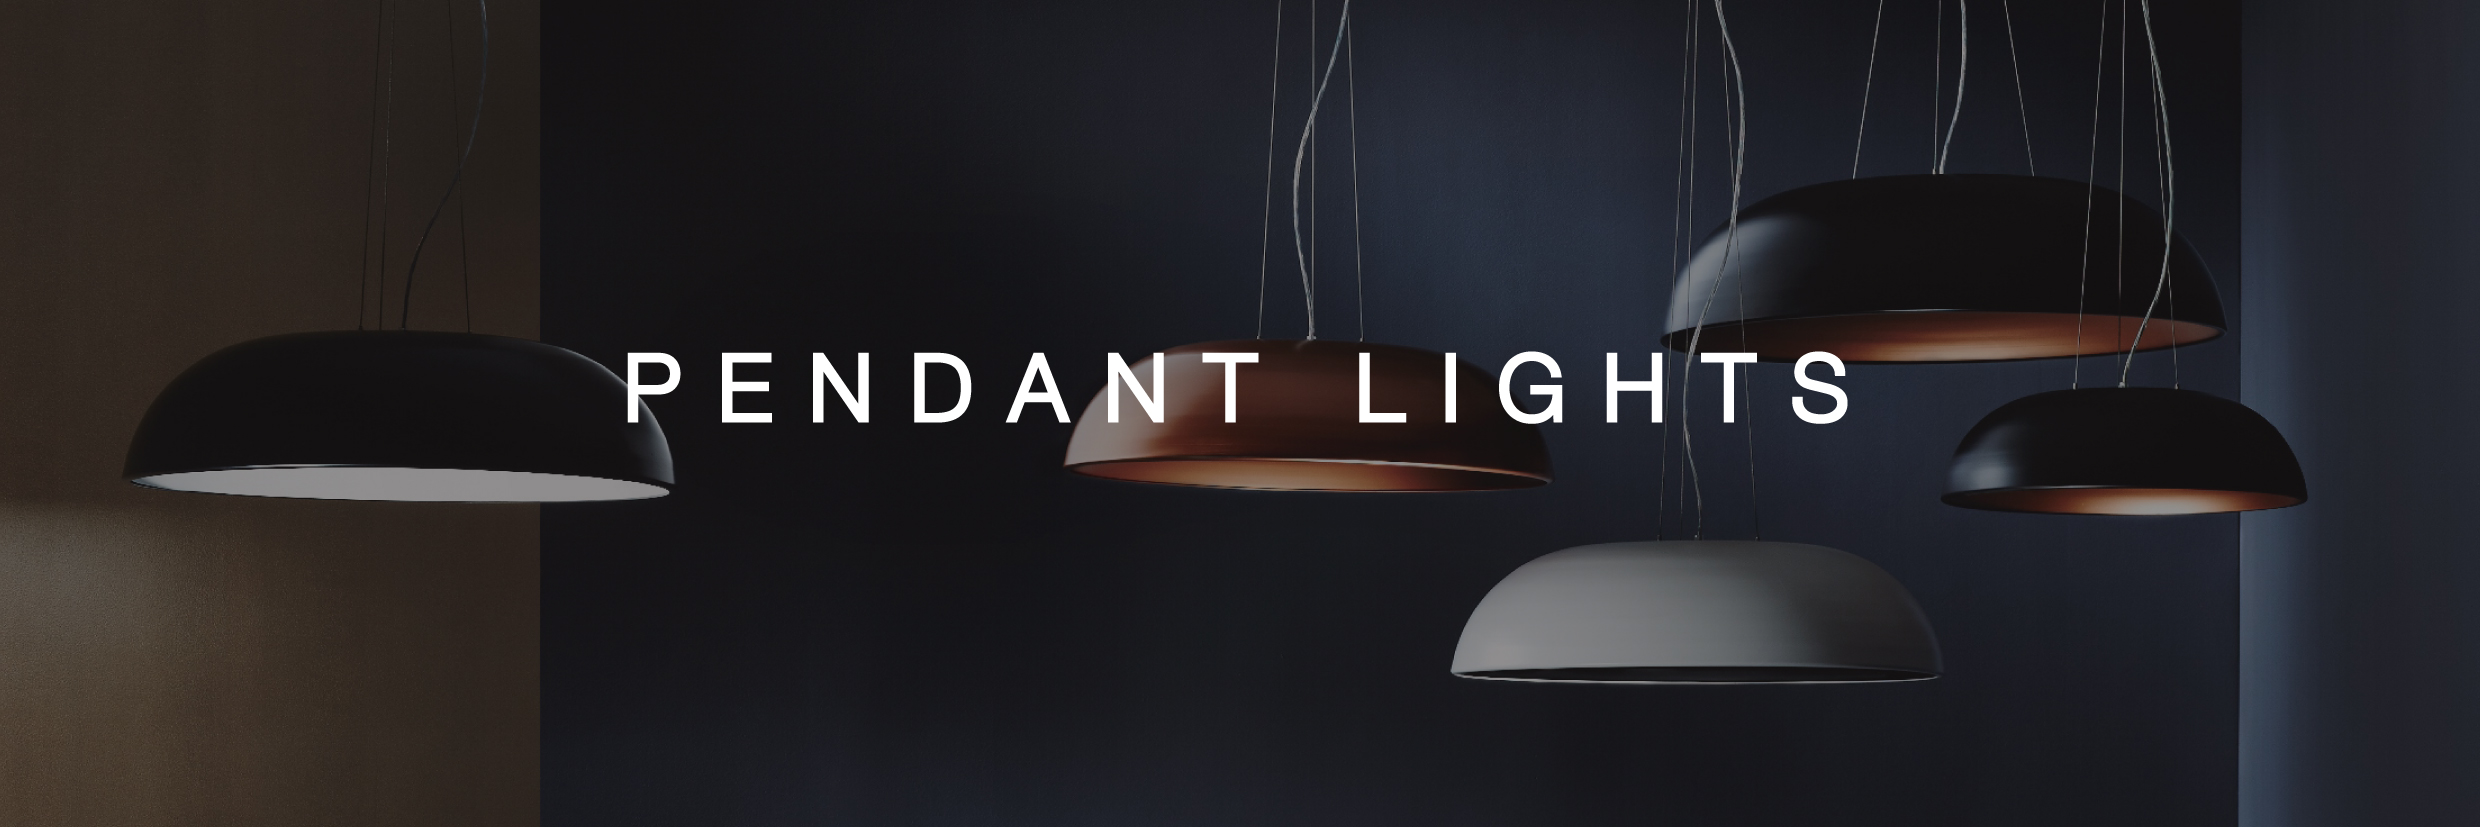 Pendant Lights — ISM OBJECTS